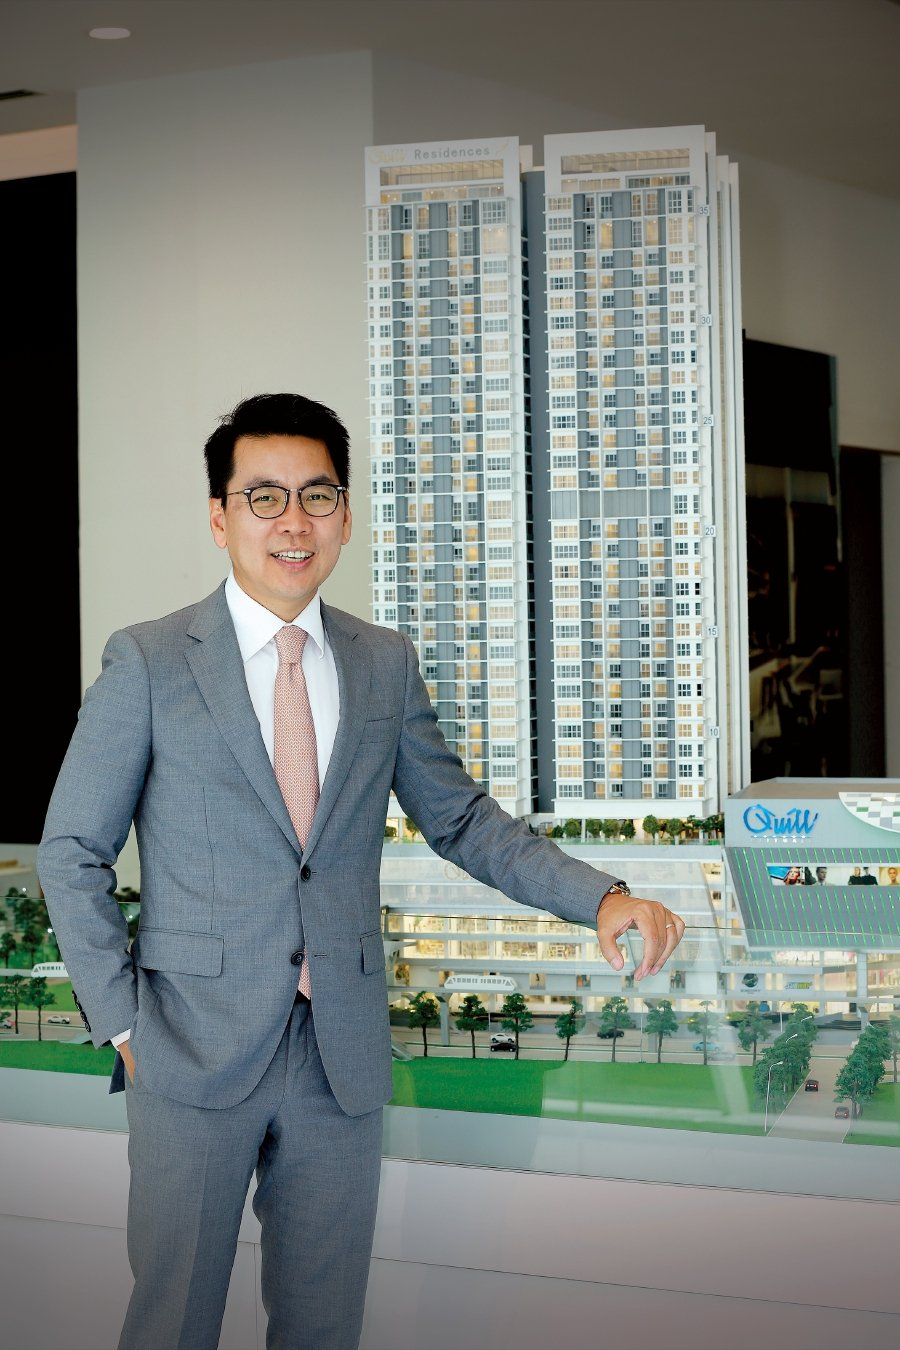 The Quill group's newly appointed group chief executive officer Koong Wai Seng. Photo credit CHTNetwork